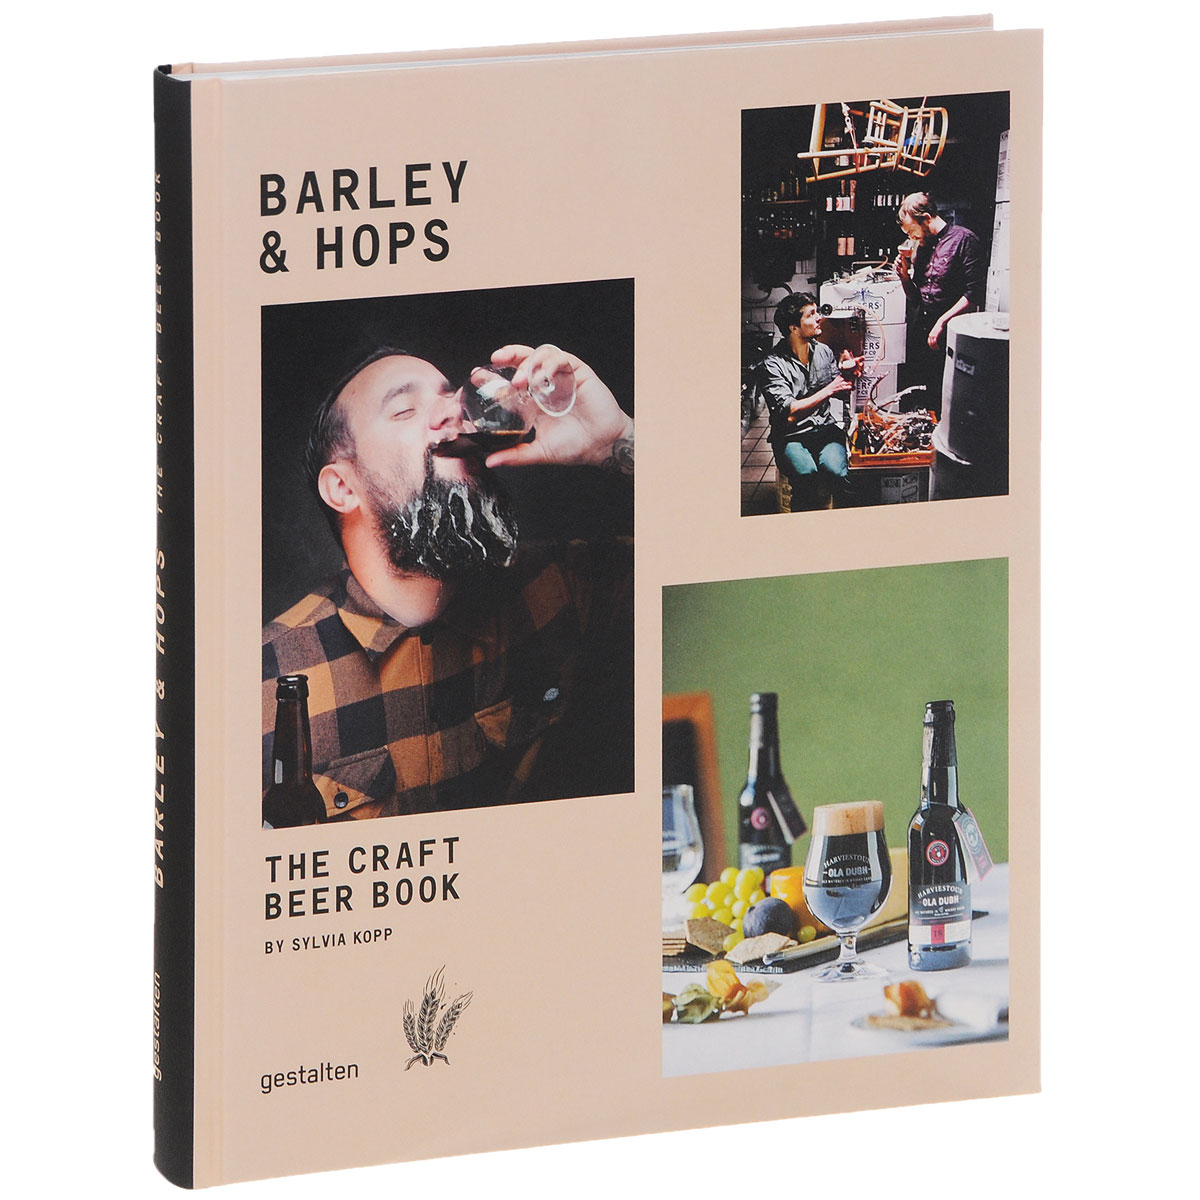 Barley & Hops: The Craft Beer Book barley for the 21st century's ruminant